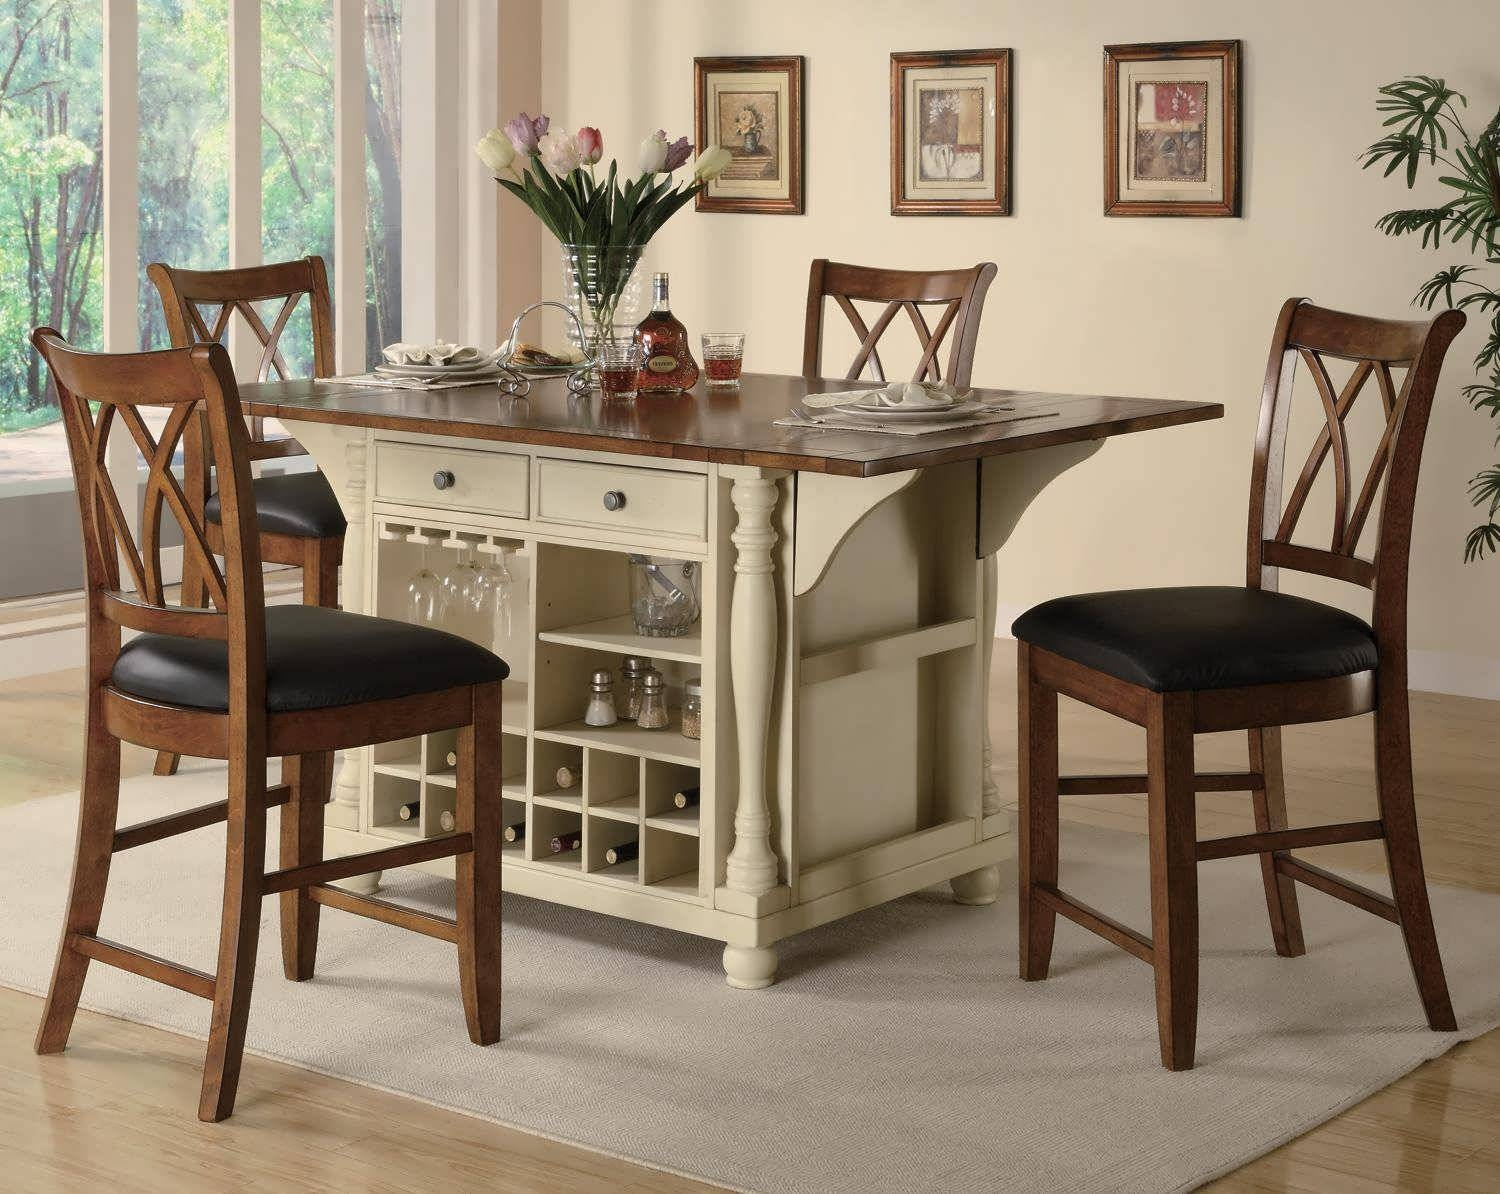 Kitchen : Dining Room Table And Chairs Dining Room Furniture Sale in Sofa Table With Chairs (Image 21 of 30)